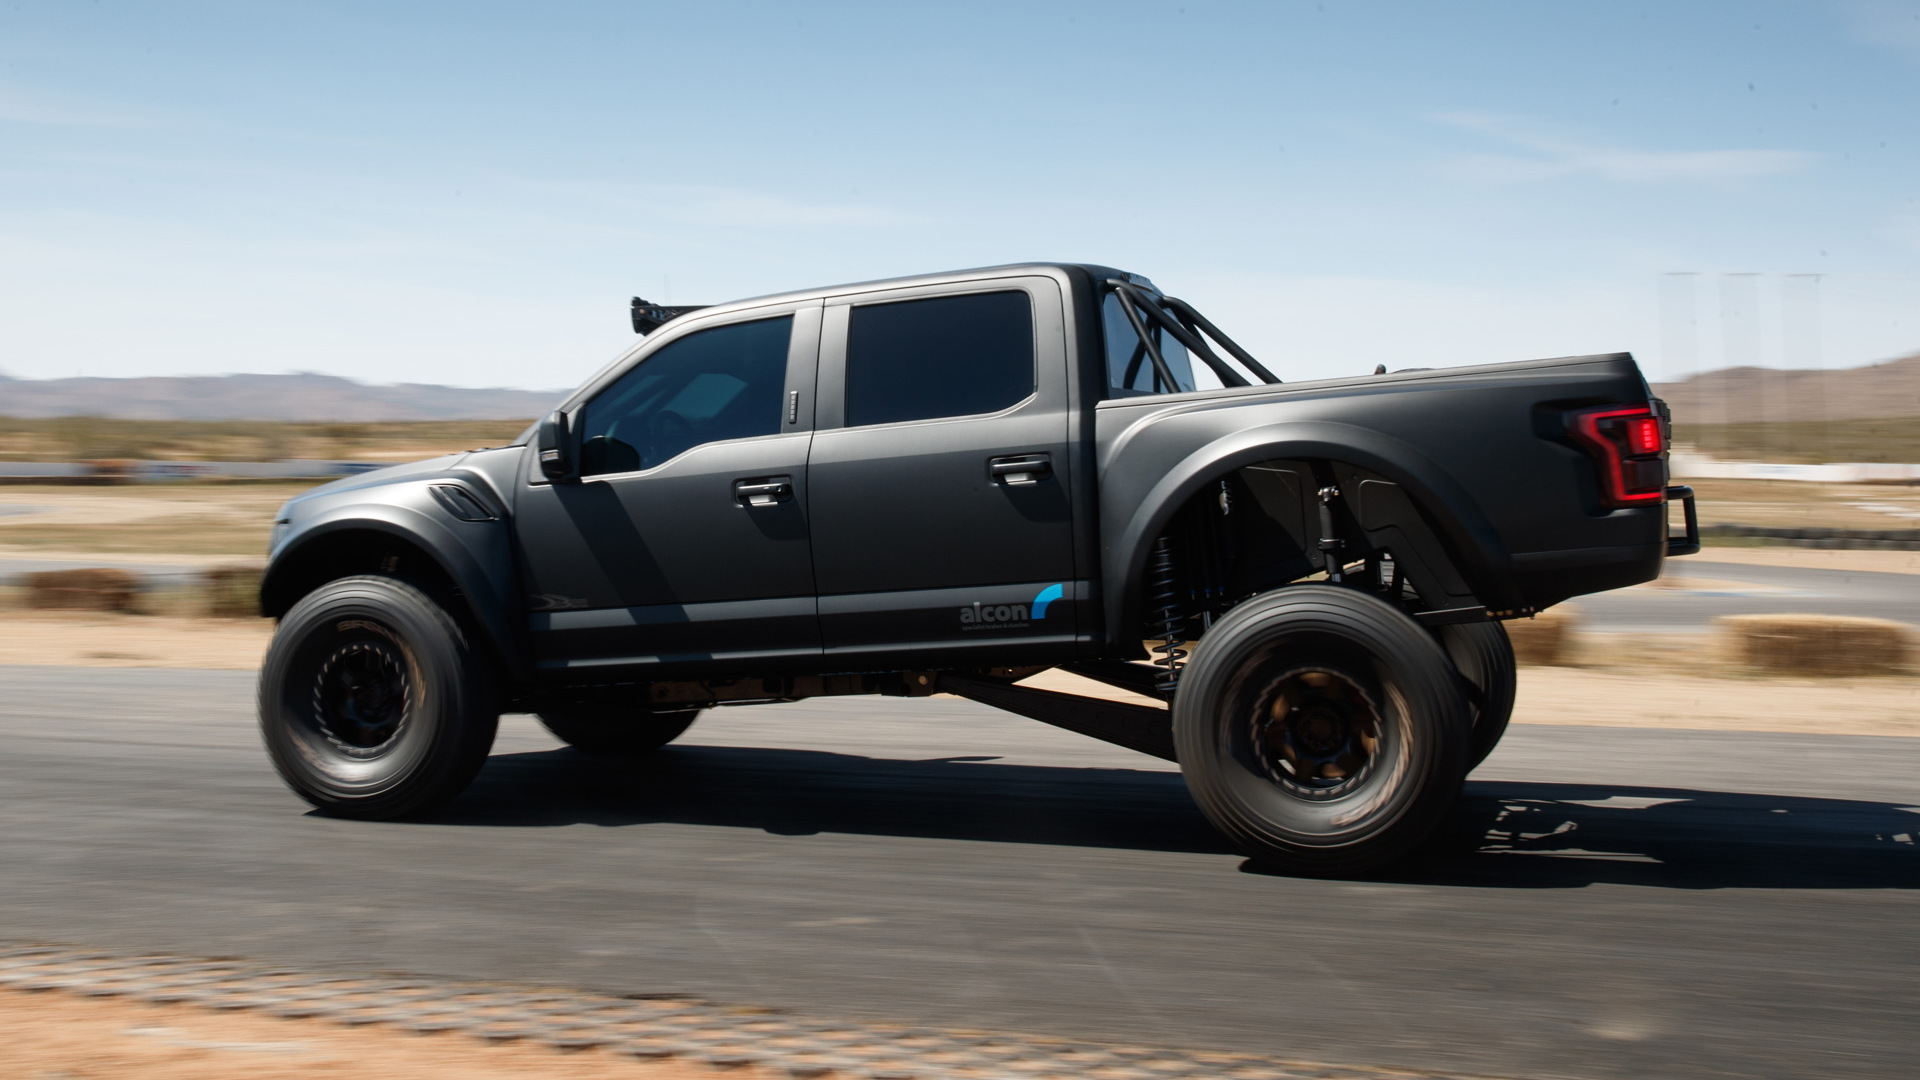 Alcon has a powerful brake upgrade for the Ford F-150 Raptor